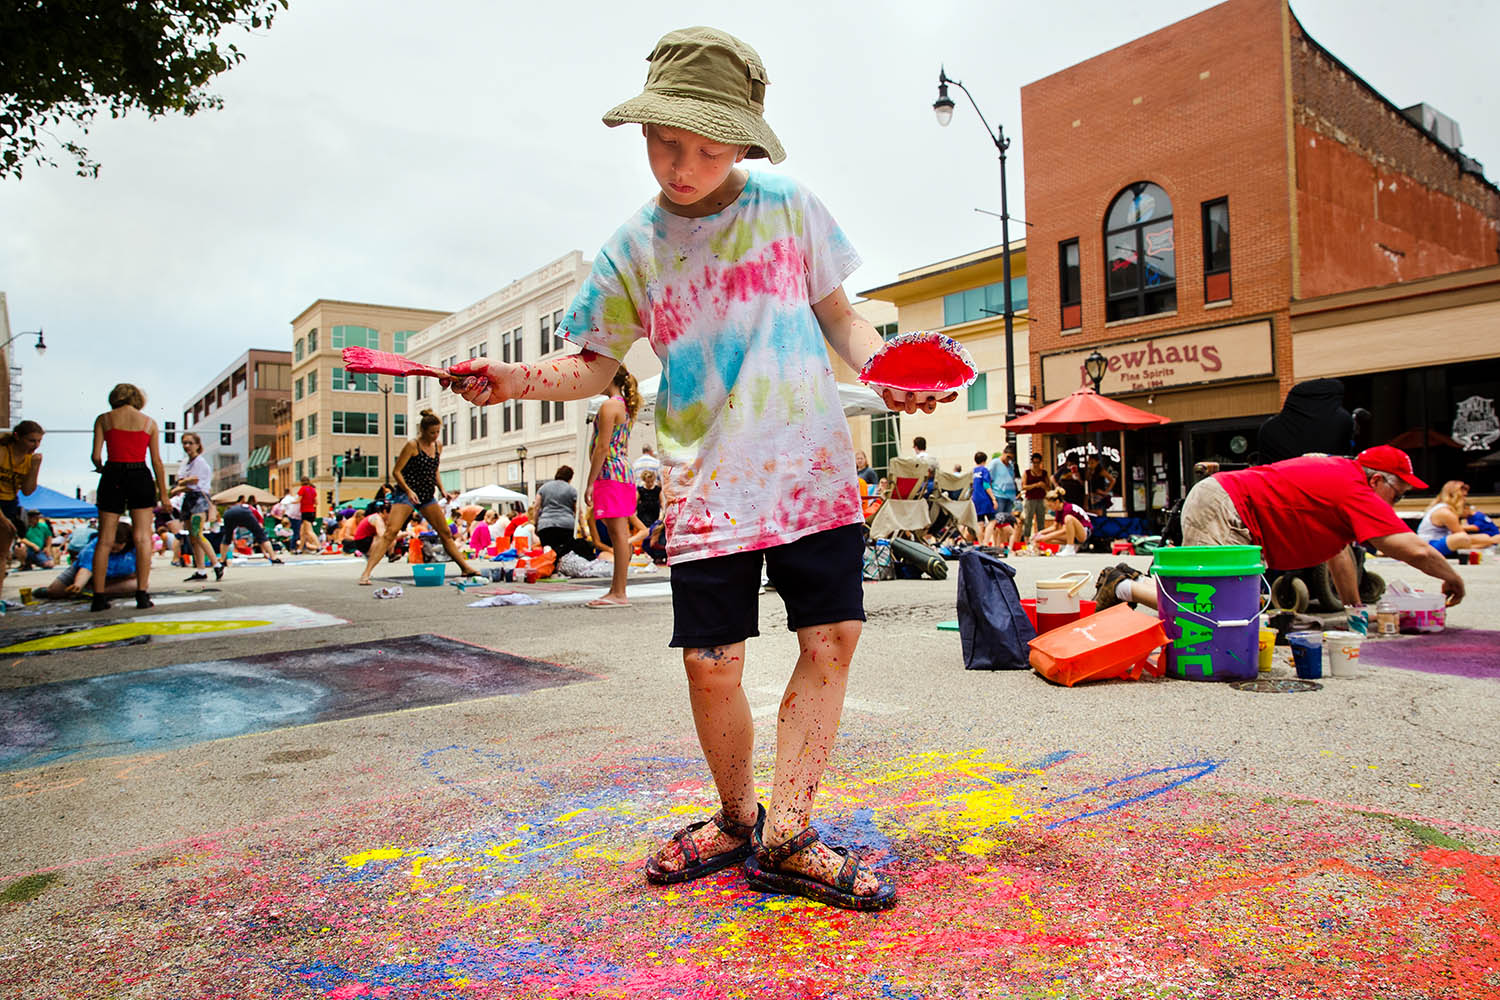 Six-year-old Eddie Longcore drips paint onto his creation during the Springfield Art Association's 2019 Paint the Street event in downtown Springfield, Ill., Saturday, June 22, 2019. Participants and groups were given a 6' x 6' square upon which they could create their own design. Proceeds from the event help fund the association's operations and programming. [Ted Schurter/The State Journal-Register]